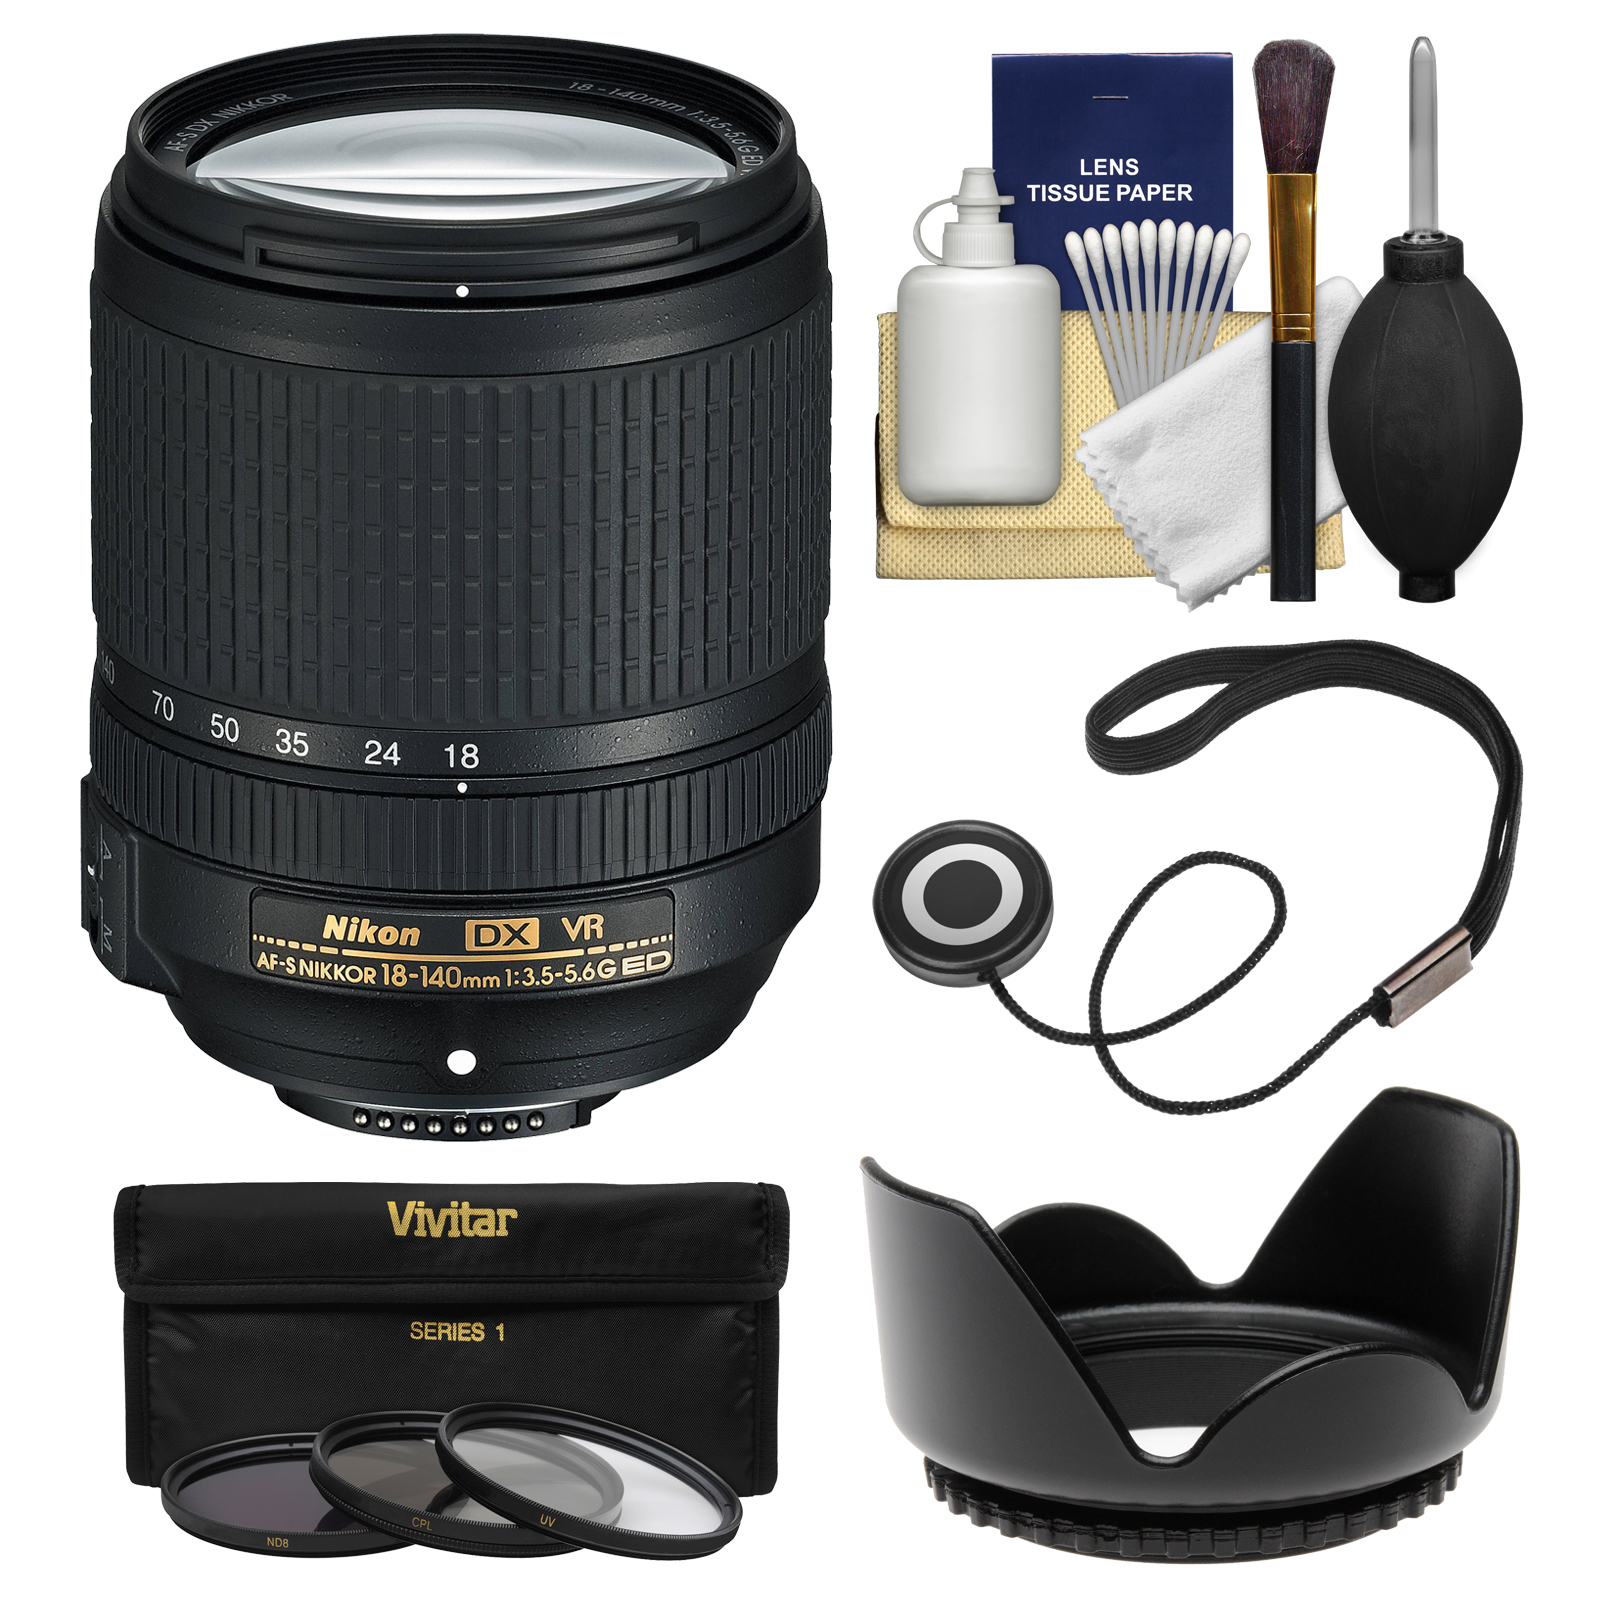 Nikon 18-140mm f/3.5-5.6G VR DX ED AF-S Nikkor-Zoom Lens - Factory Refurbished with 3 UV/CPL/ND8 Filters + Hood + Accessory Kit